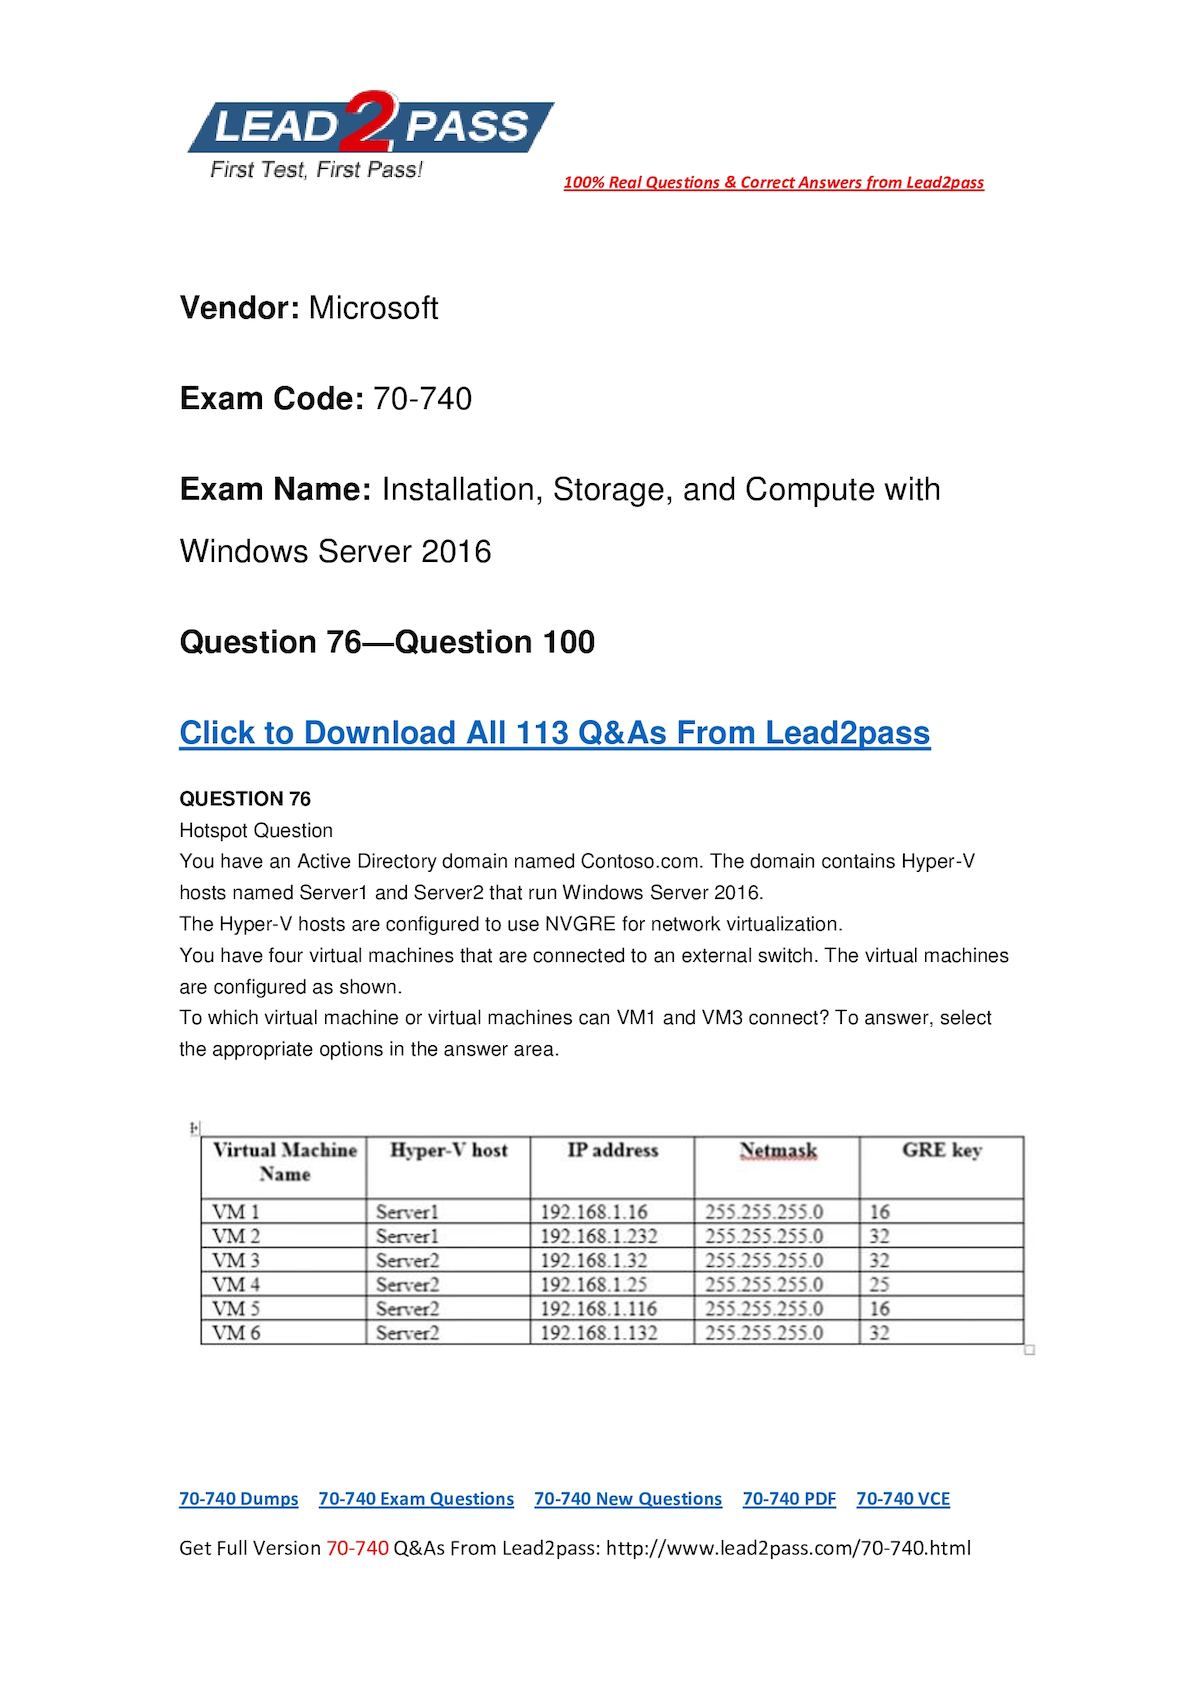 [Full Version] 70-740 VCE Files Free Instant Download (76-100)